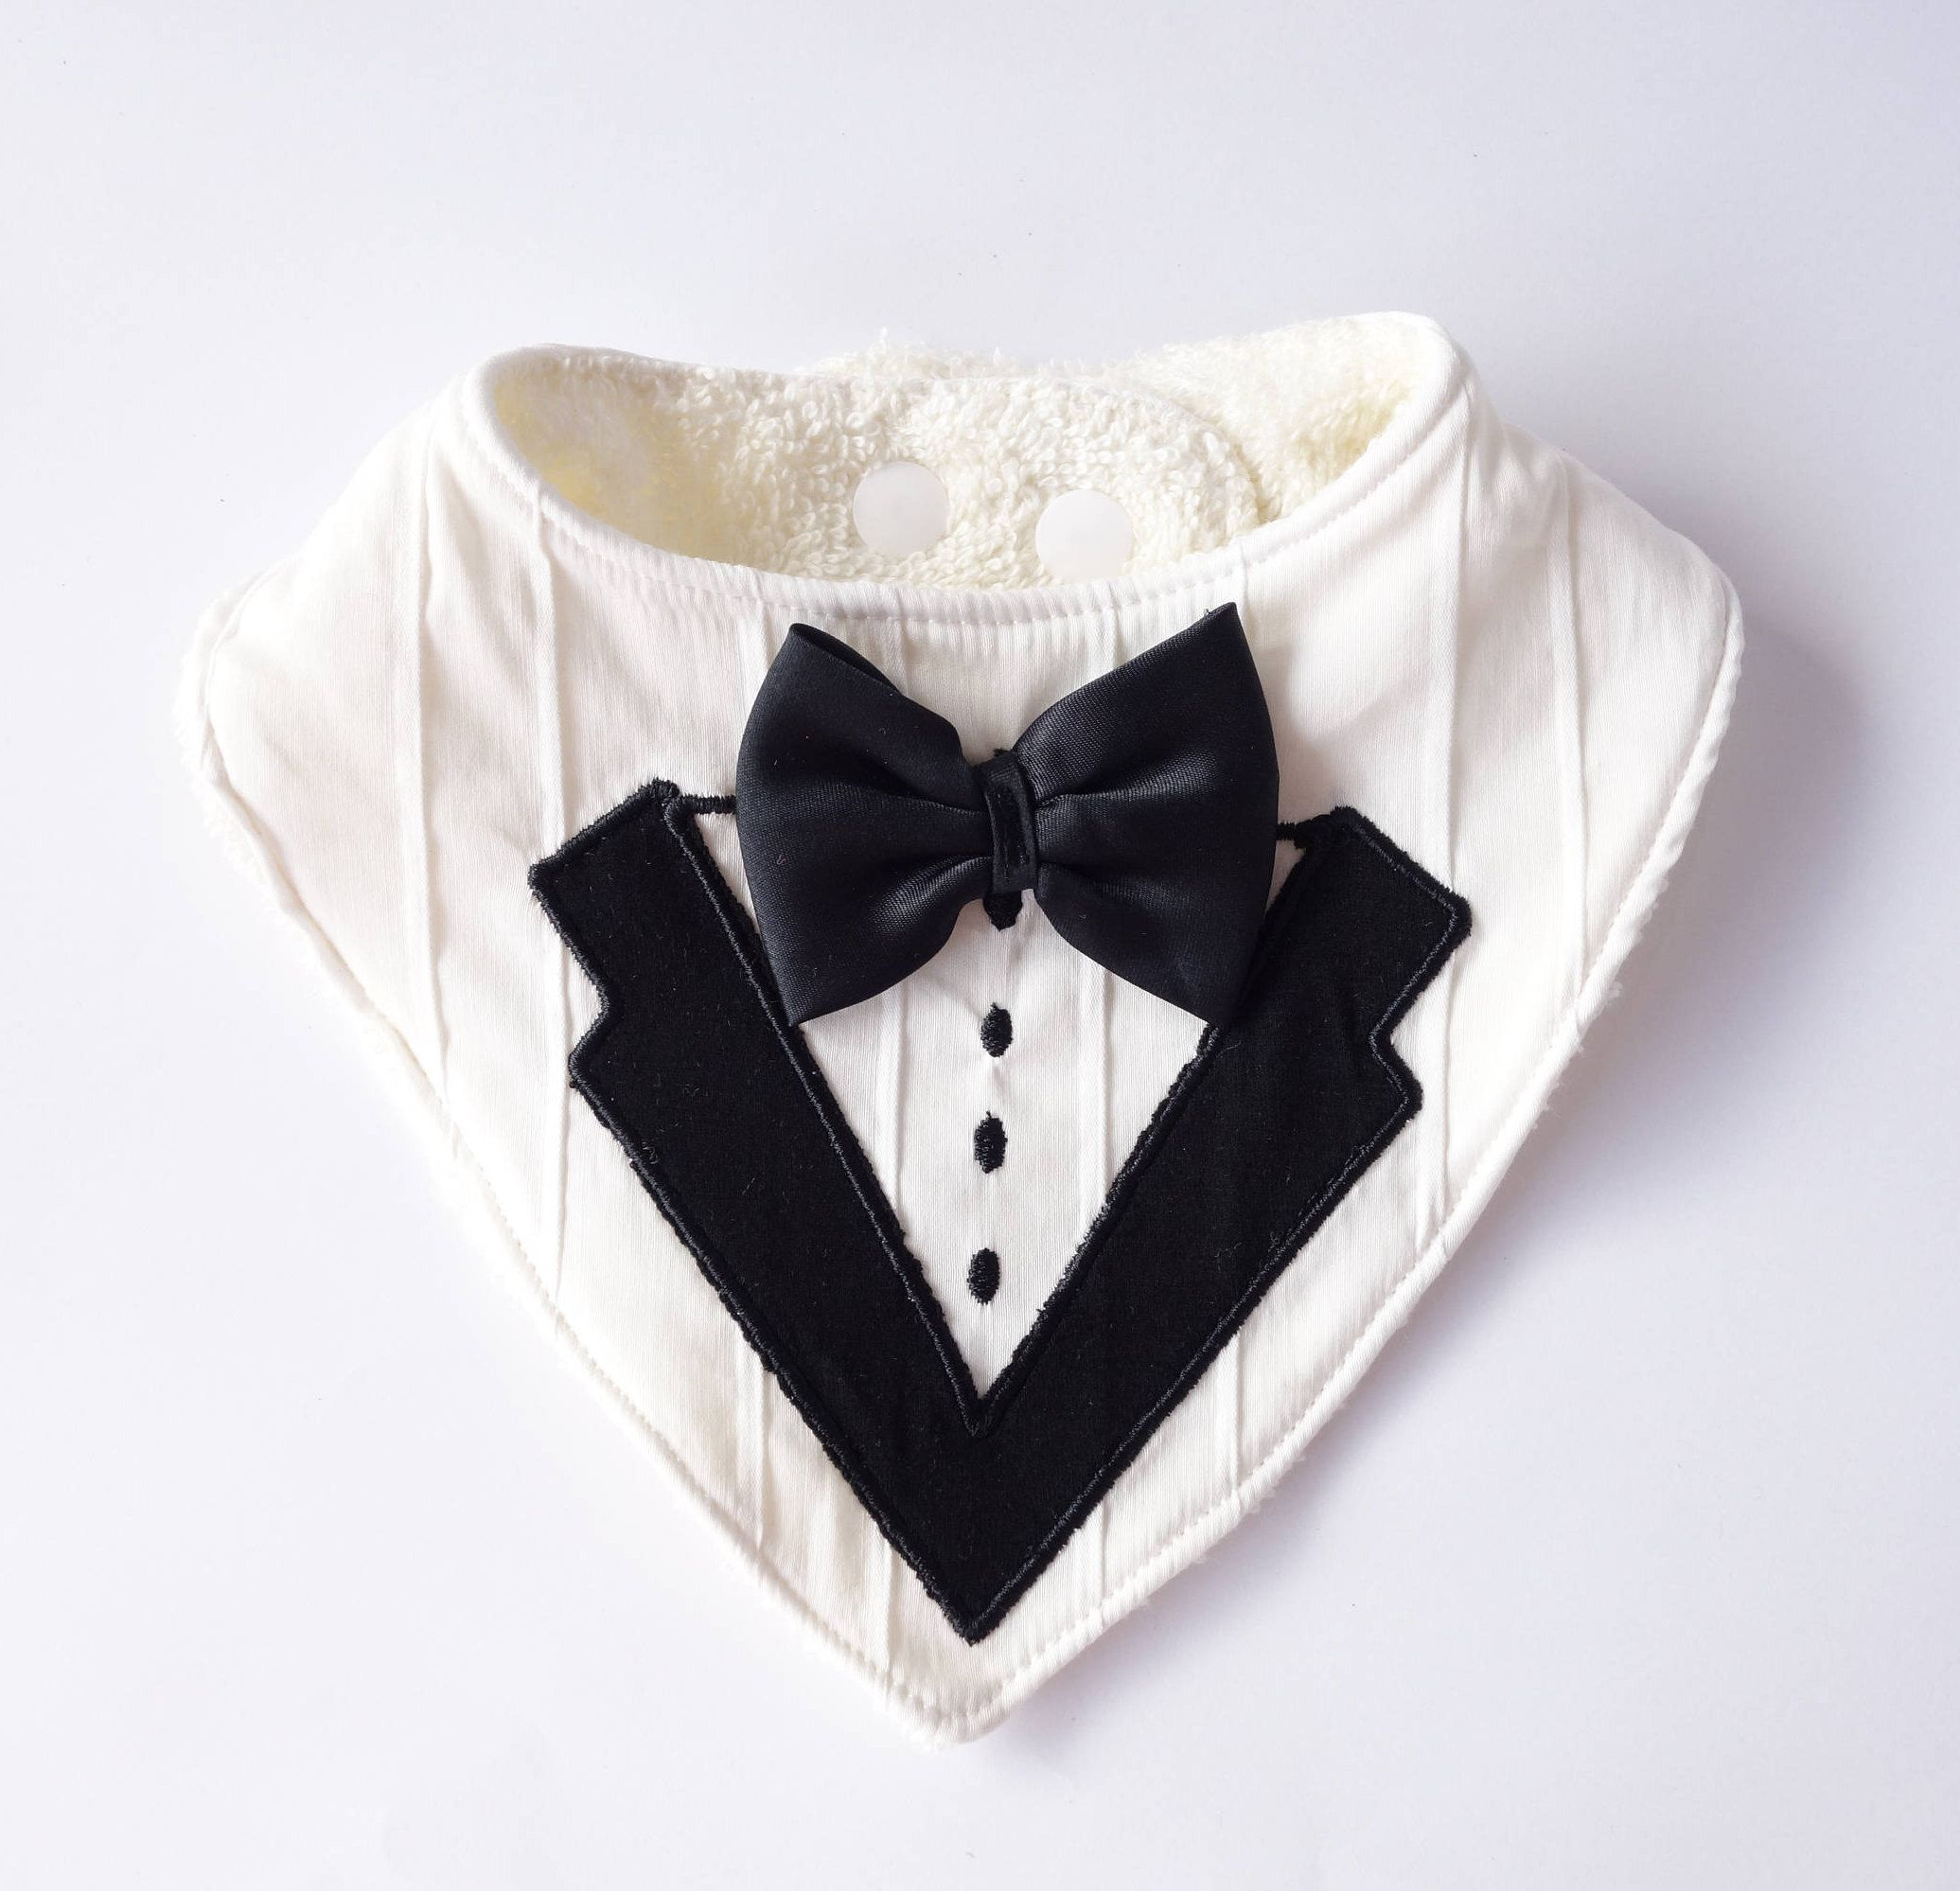 a6221c50d best bibs/ tuxedo bib/ trendy boy bib/ boho baby bibs/ stylish baby bib/ baby  boy bib/ baby gift / dribble bib/ teething bib by YouMeJP on Etsy